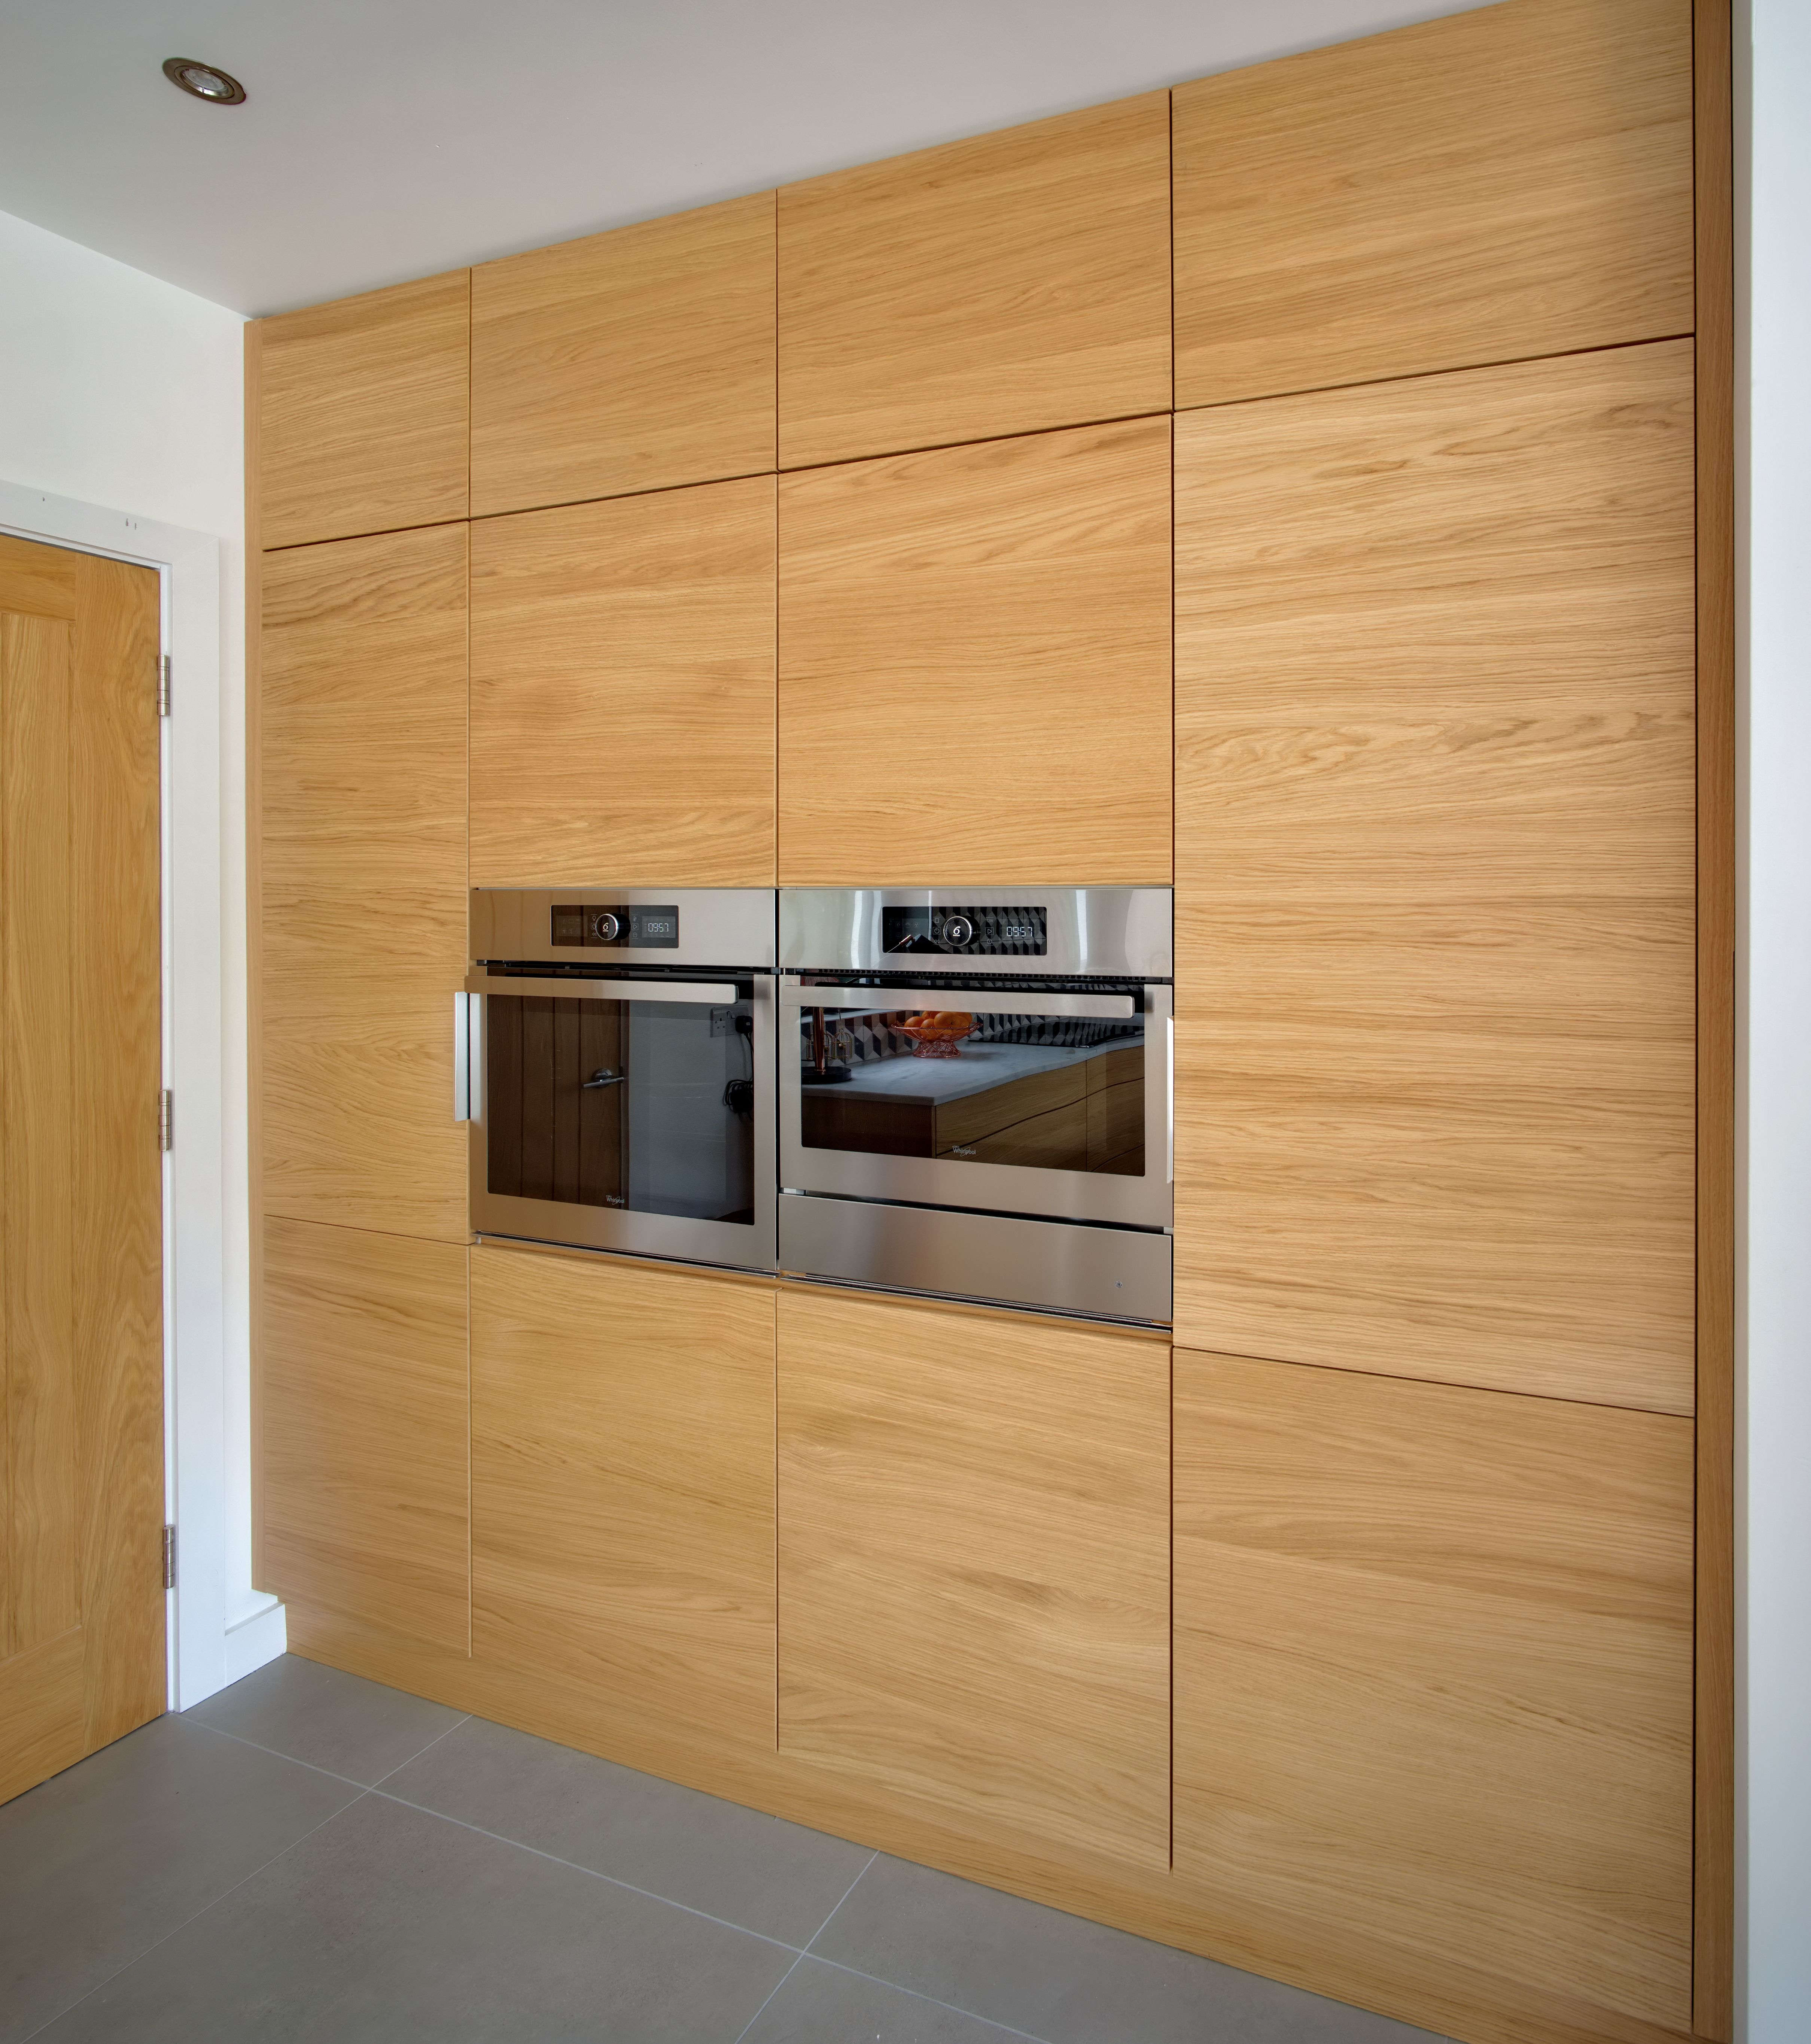 Push Opening Oak Horizontal Wood Grain Doors And Flush Appliances Create A Modern German Inspired Look On This Appliance W Pantry Wall Kitchen Interior Kitchen